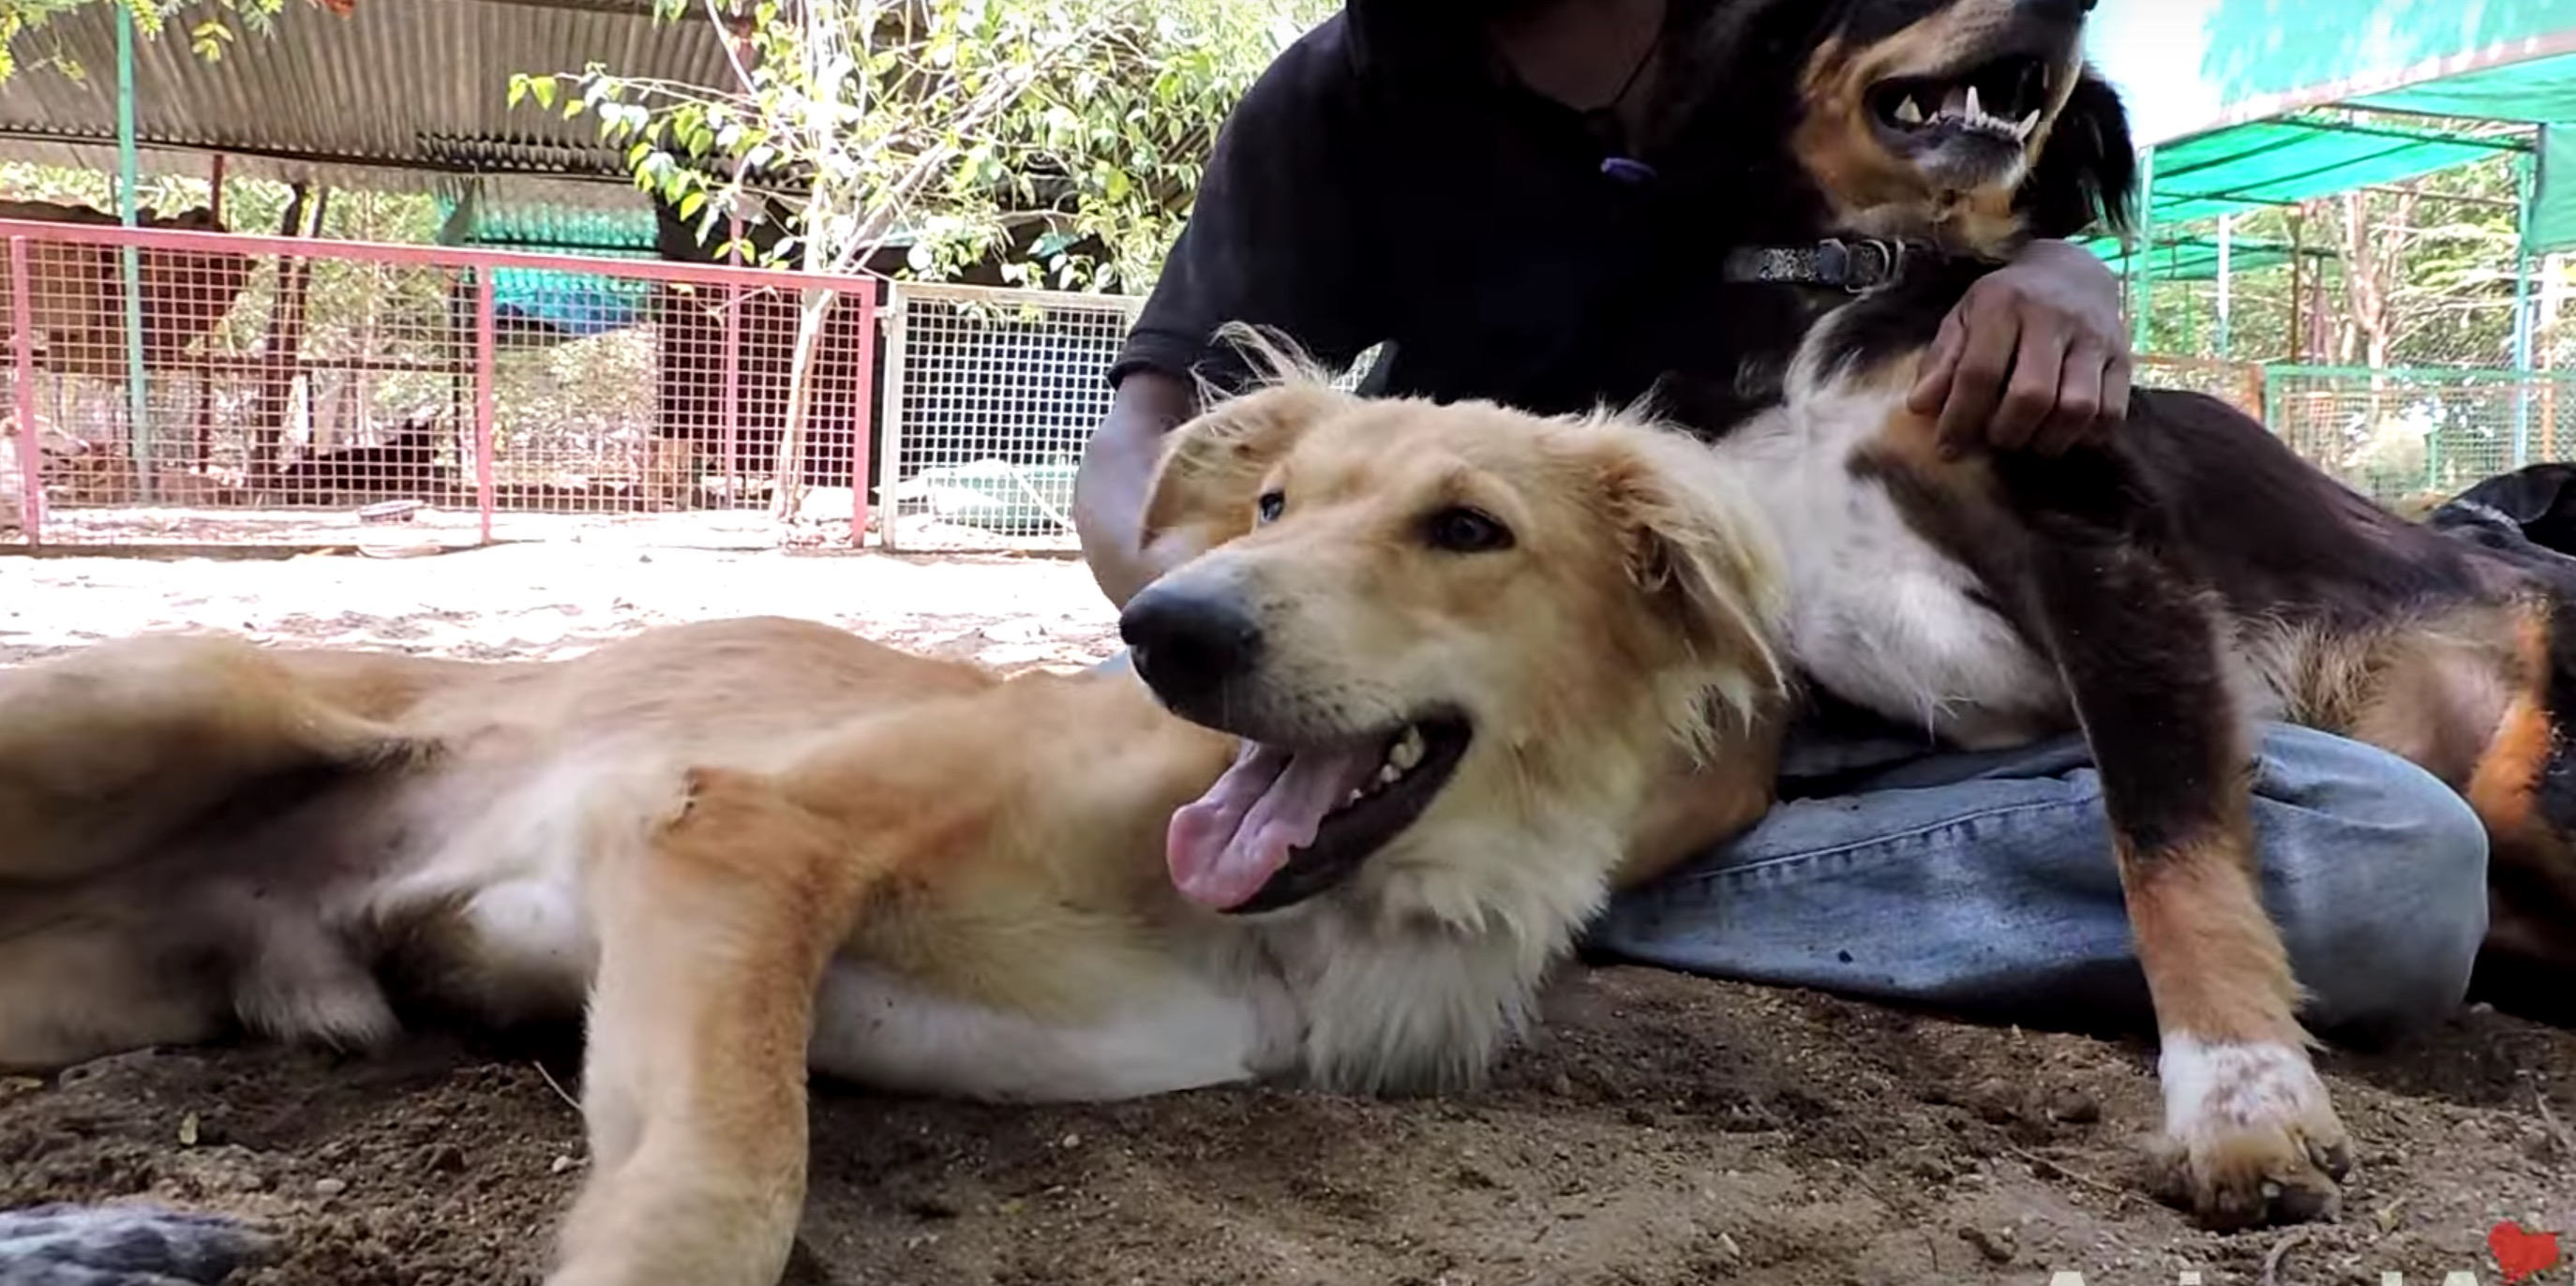 animal-aid-chien-train-blessures-9